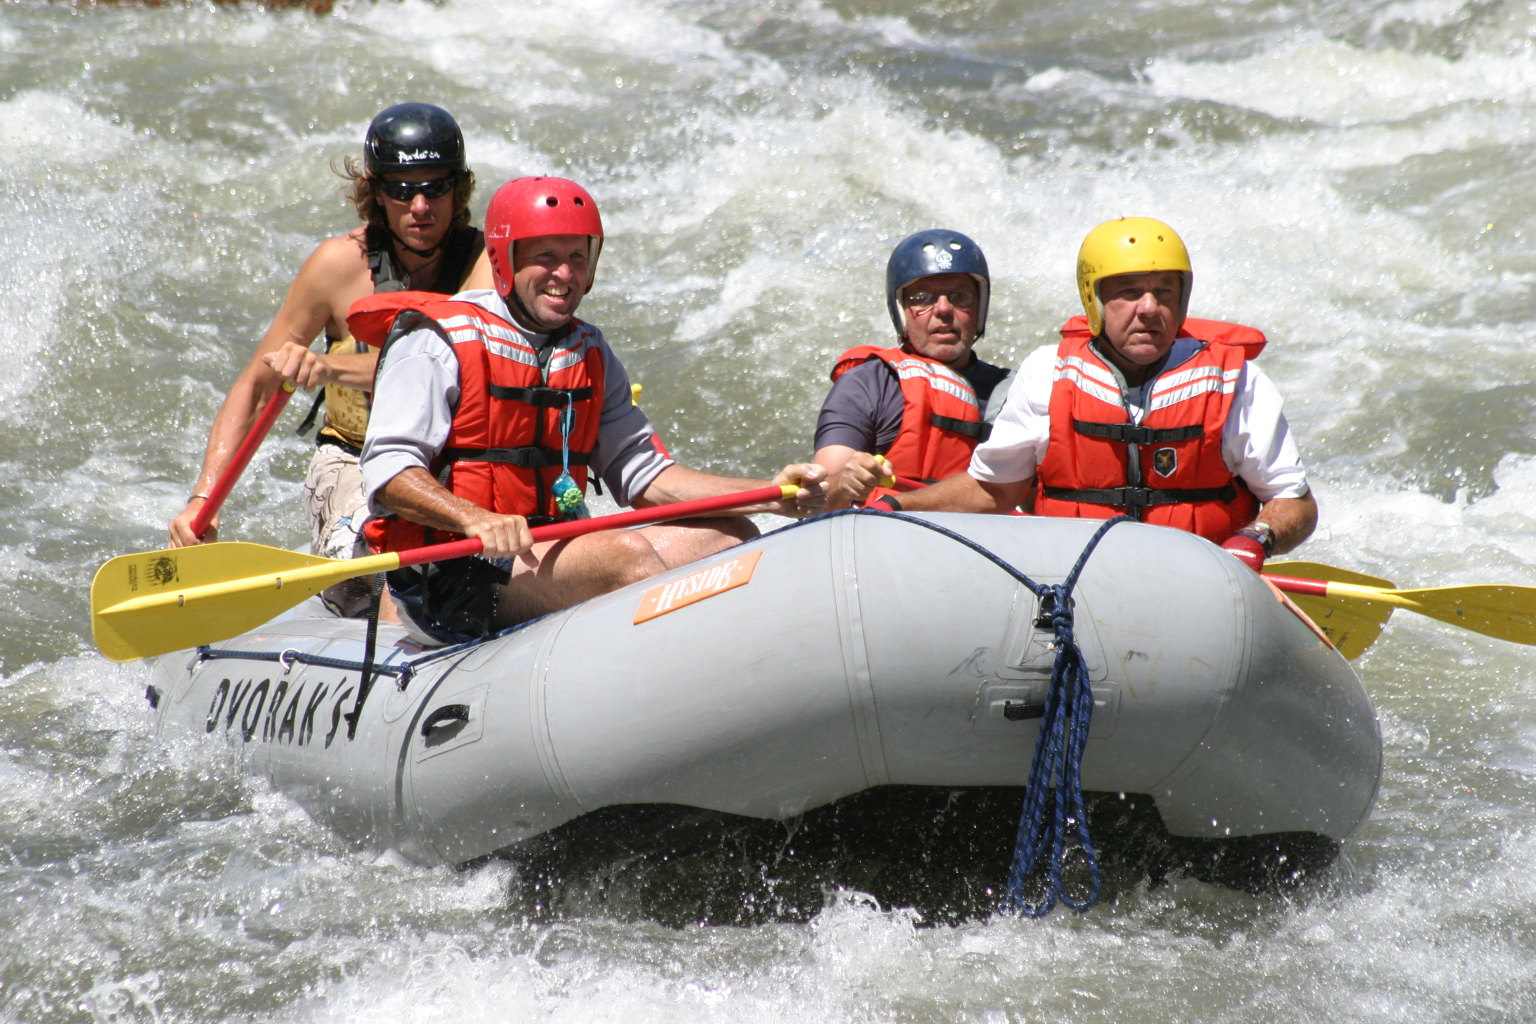 Helmets and personal flotation devices are standard on any of our Colorado river rafting trips.